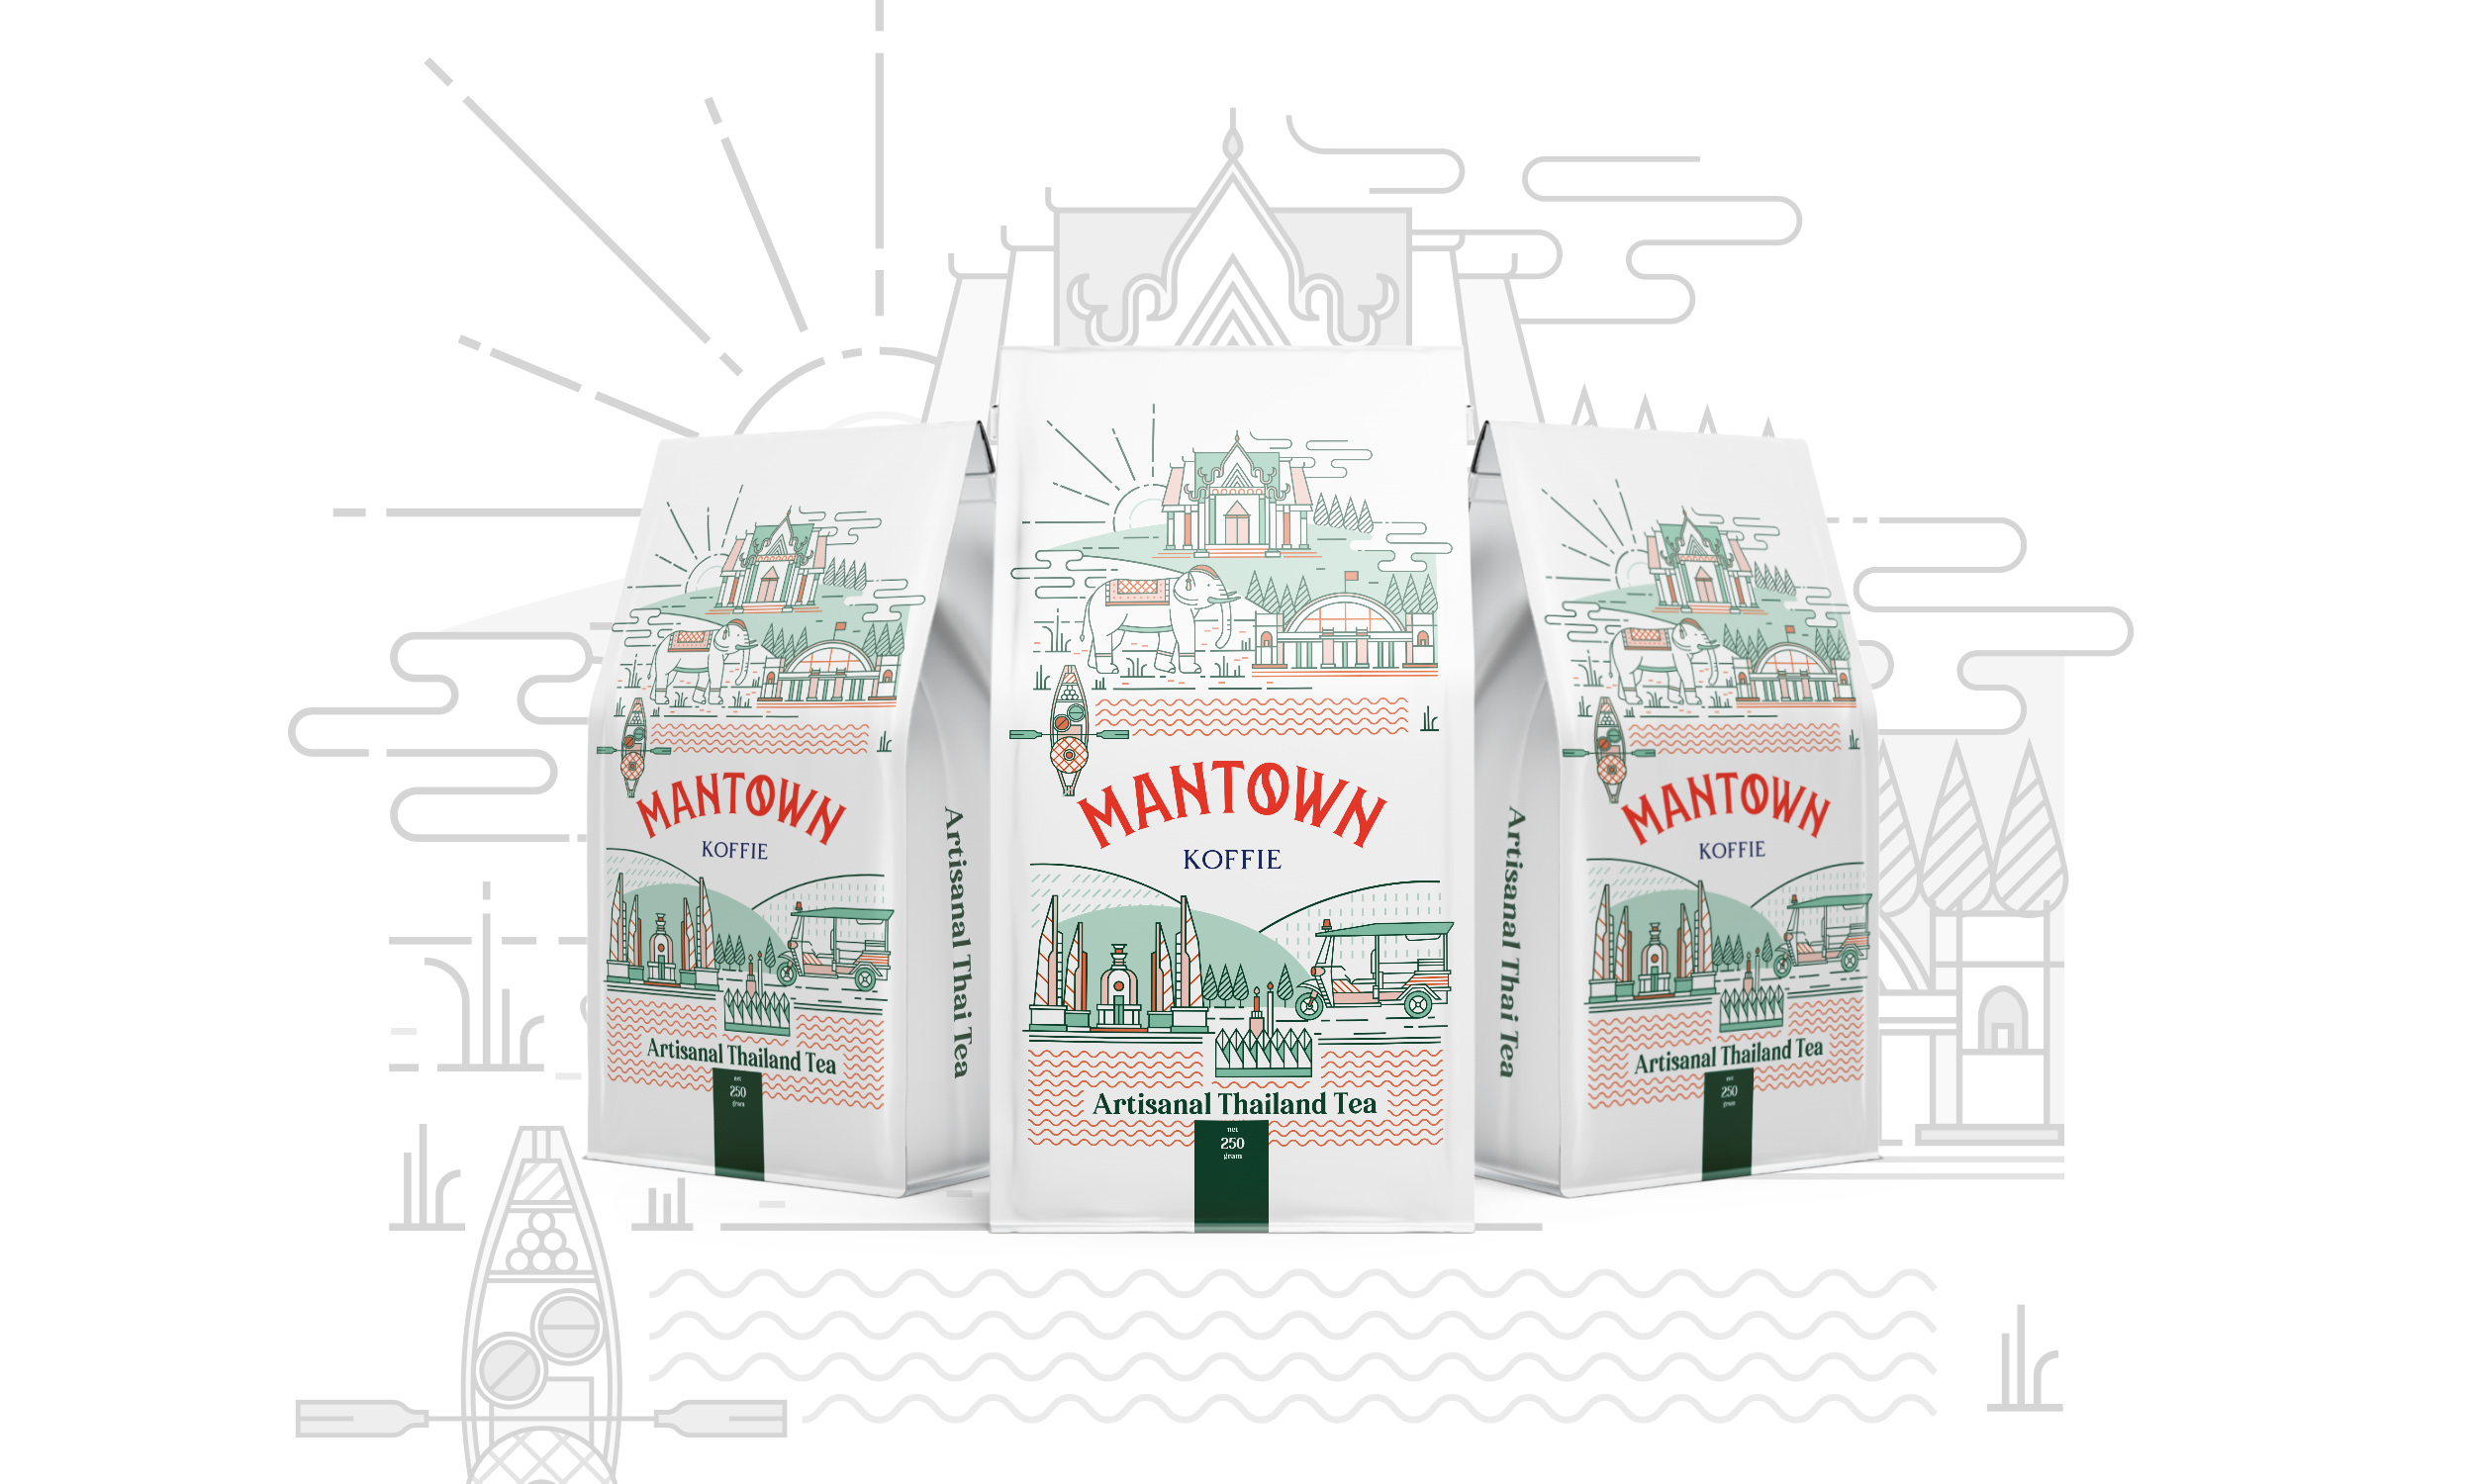 Thai Tea Packaging Design for ManTown Koffie